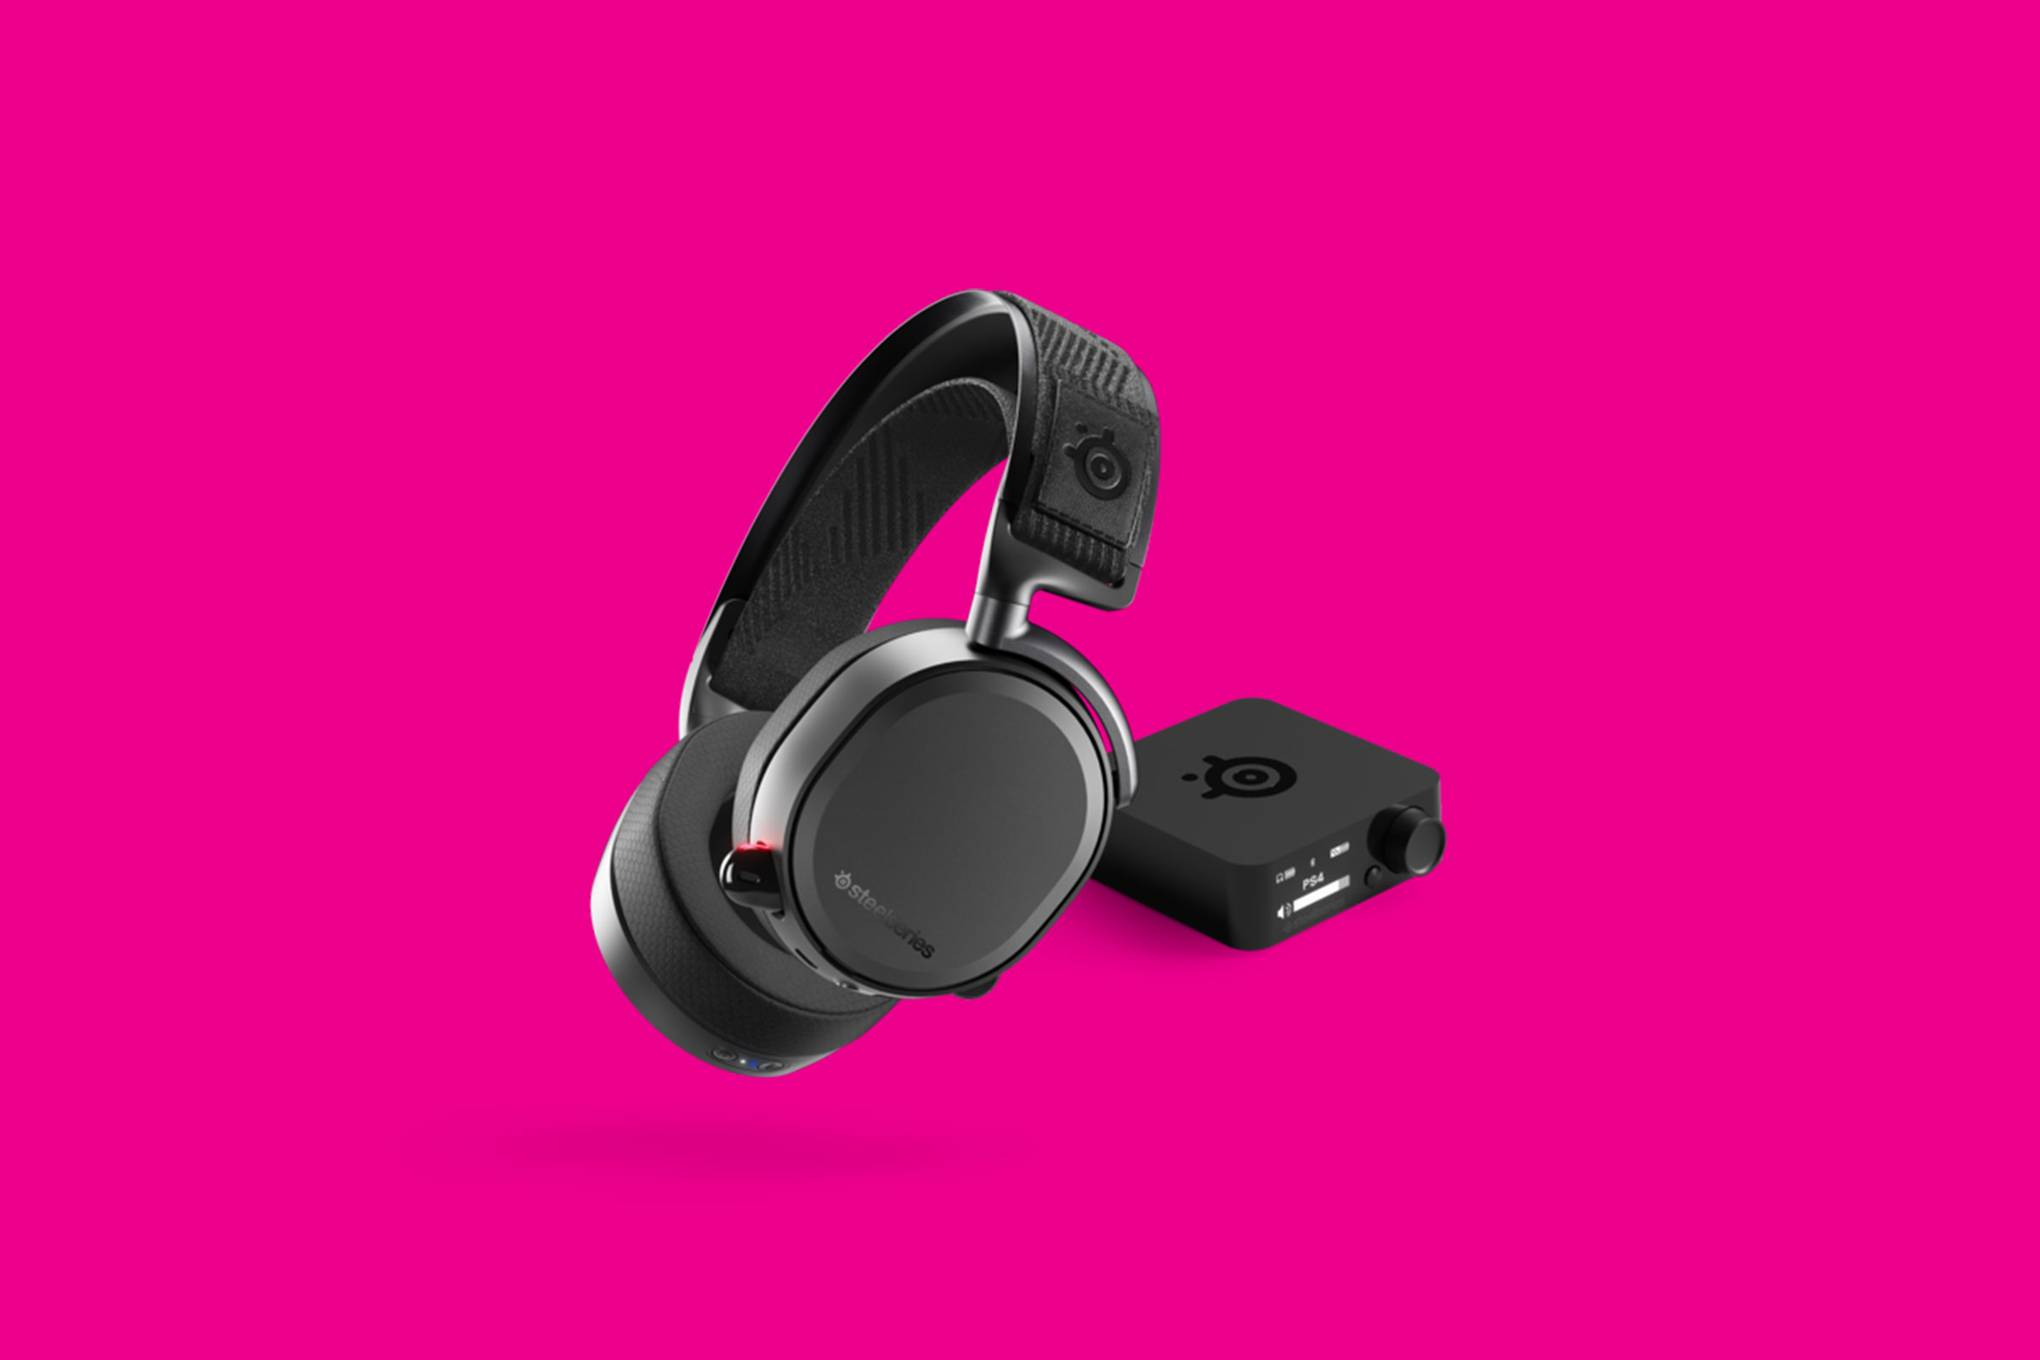 The best gaming headsets for PS4, Xbox One and PC in 2019